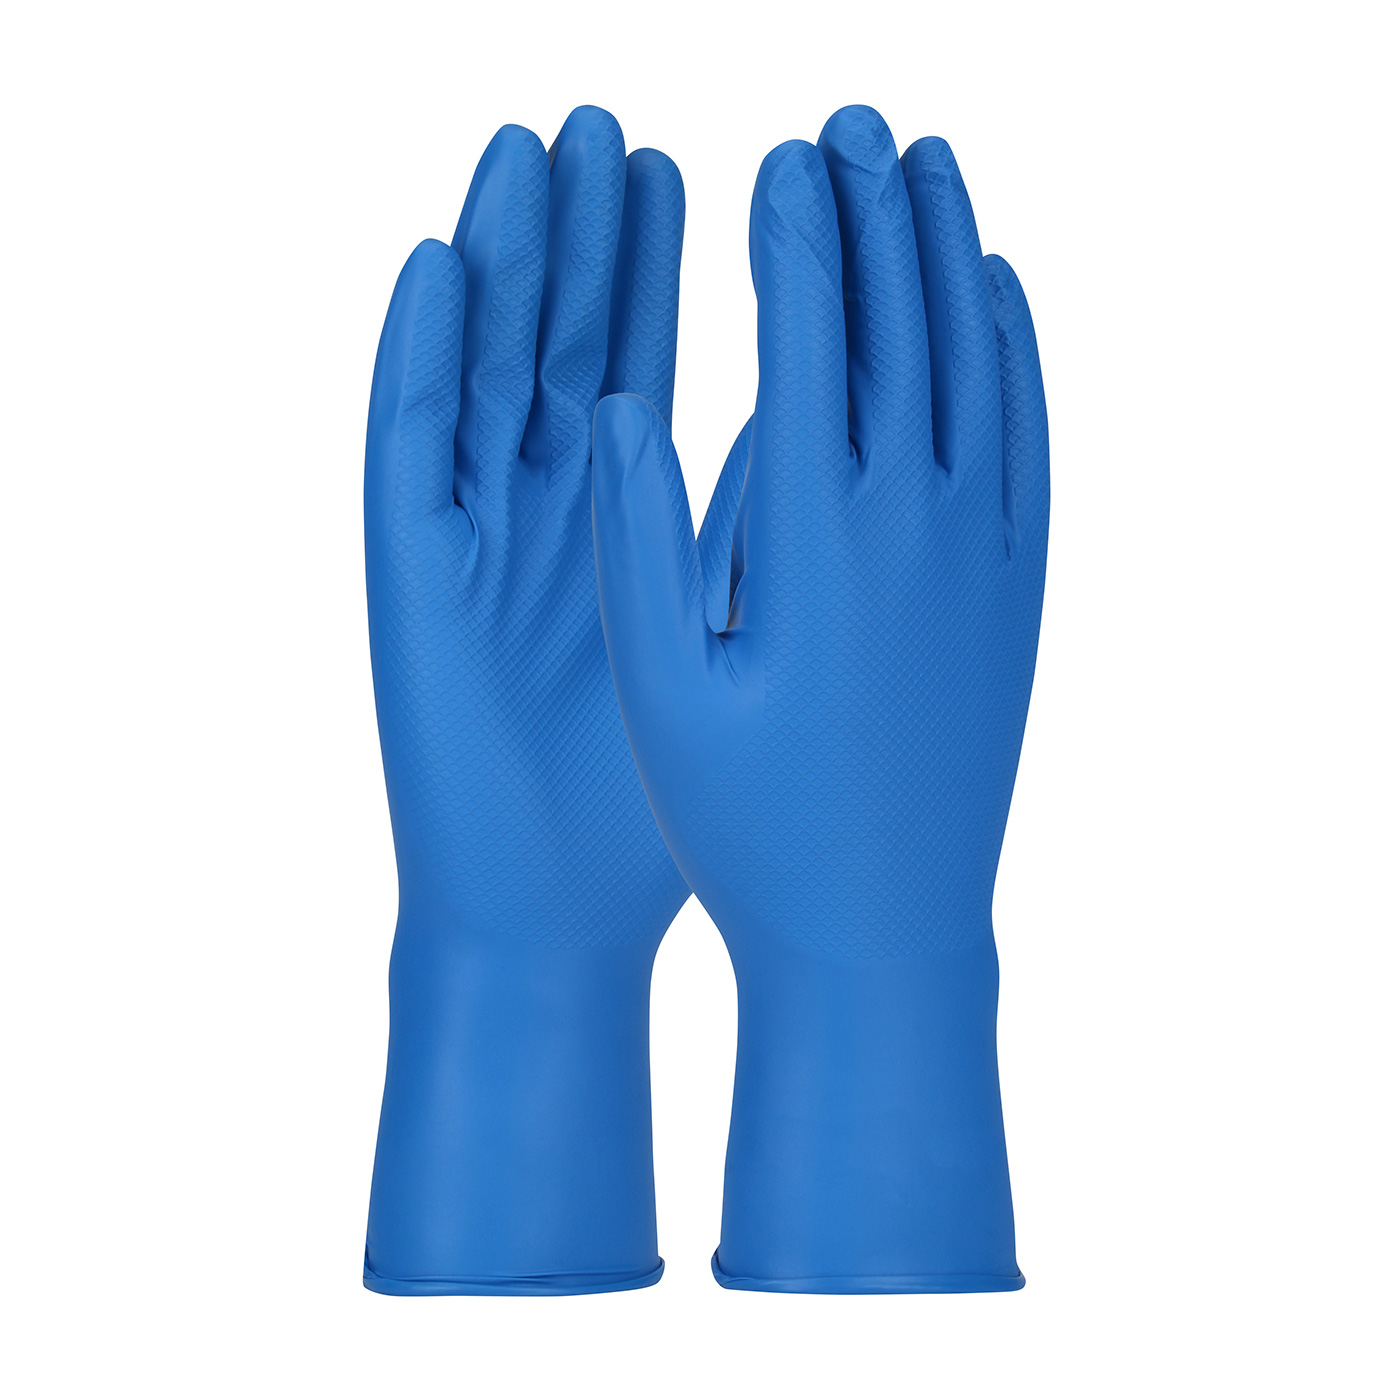 PIP® Ambi-dex® Grippaz™ Food Plus 8-mil Blue Nitrile Gloves